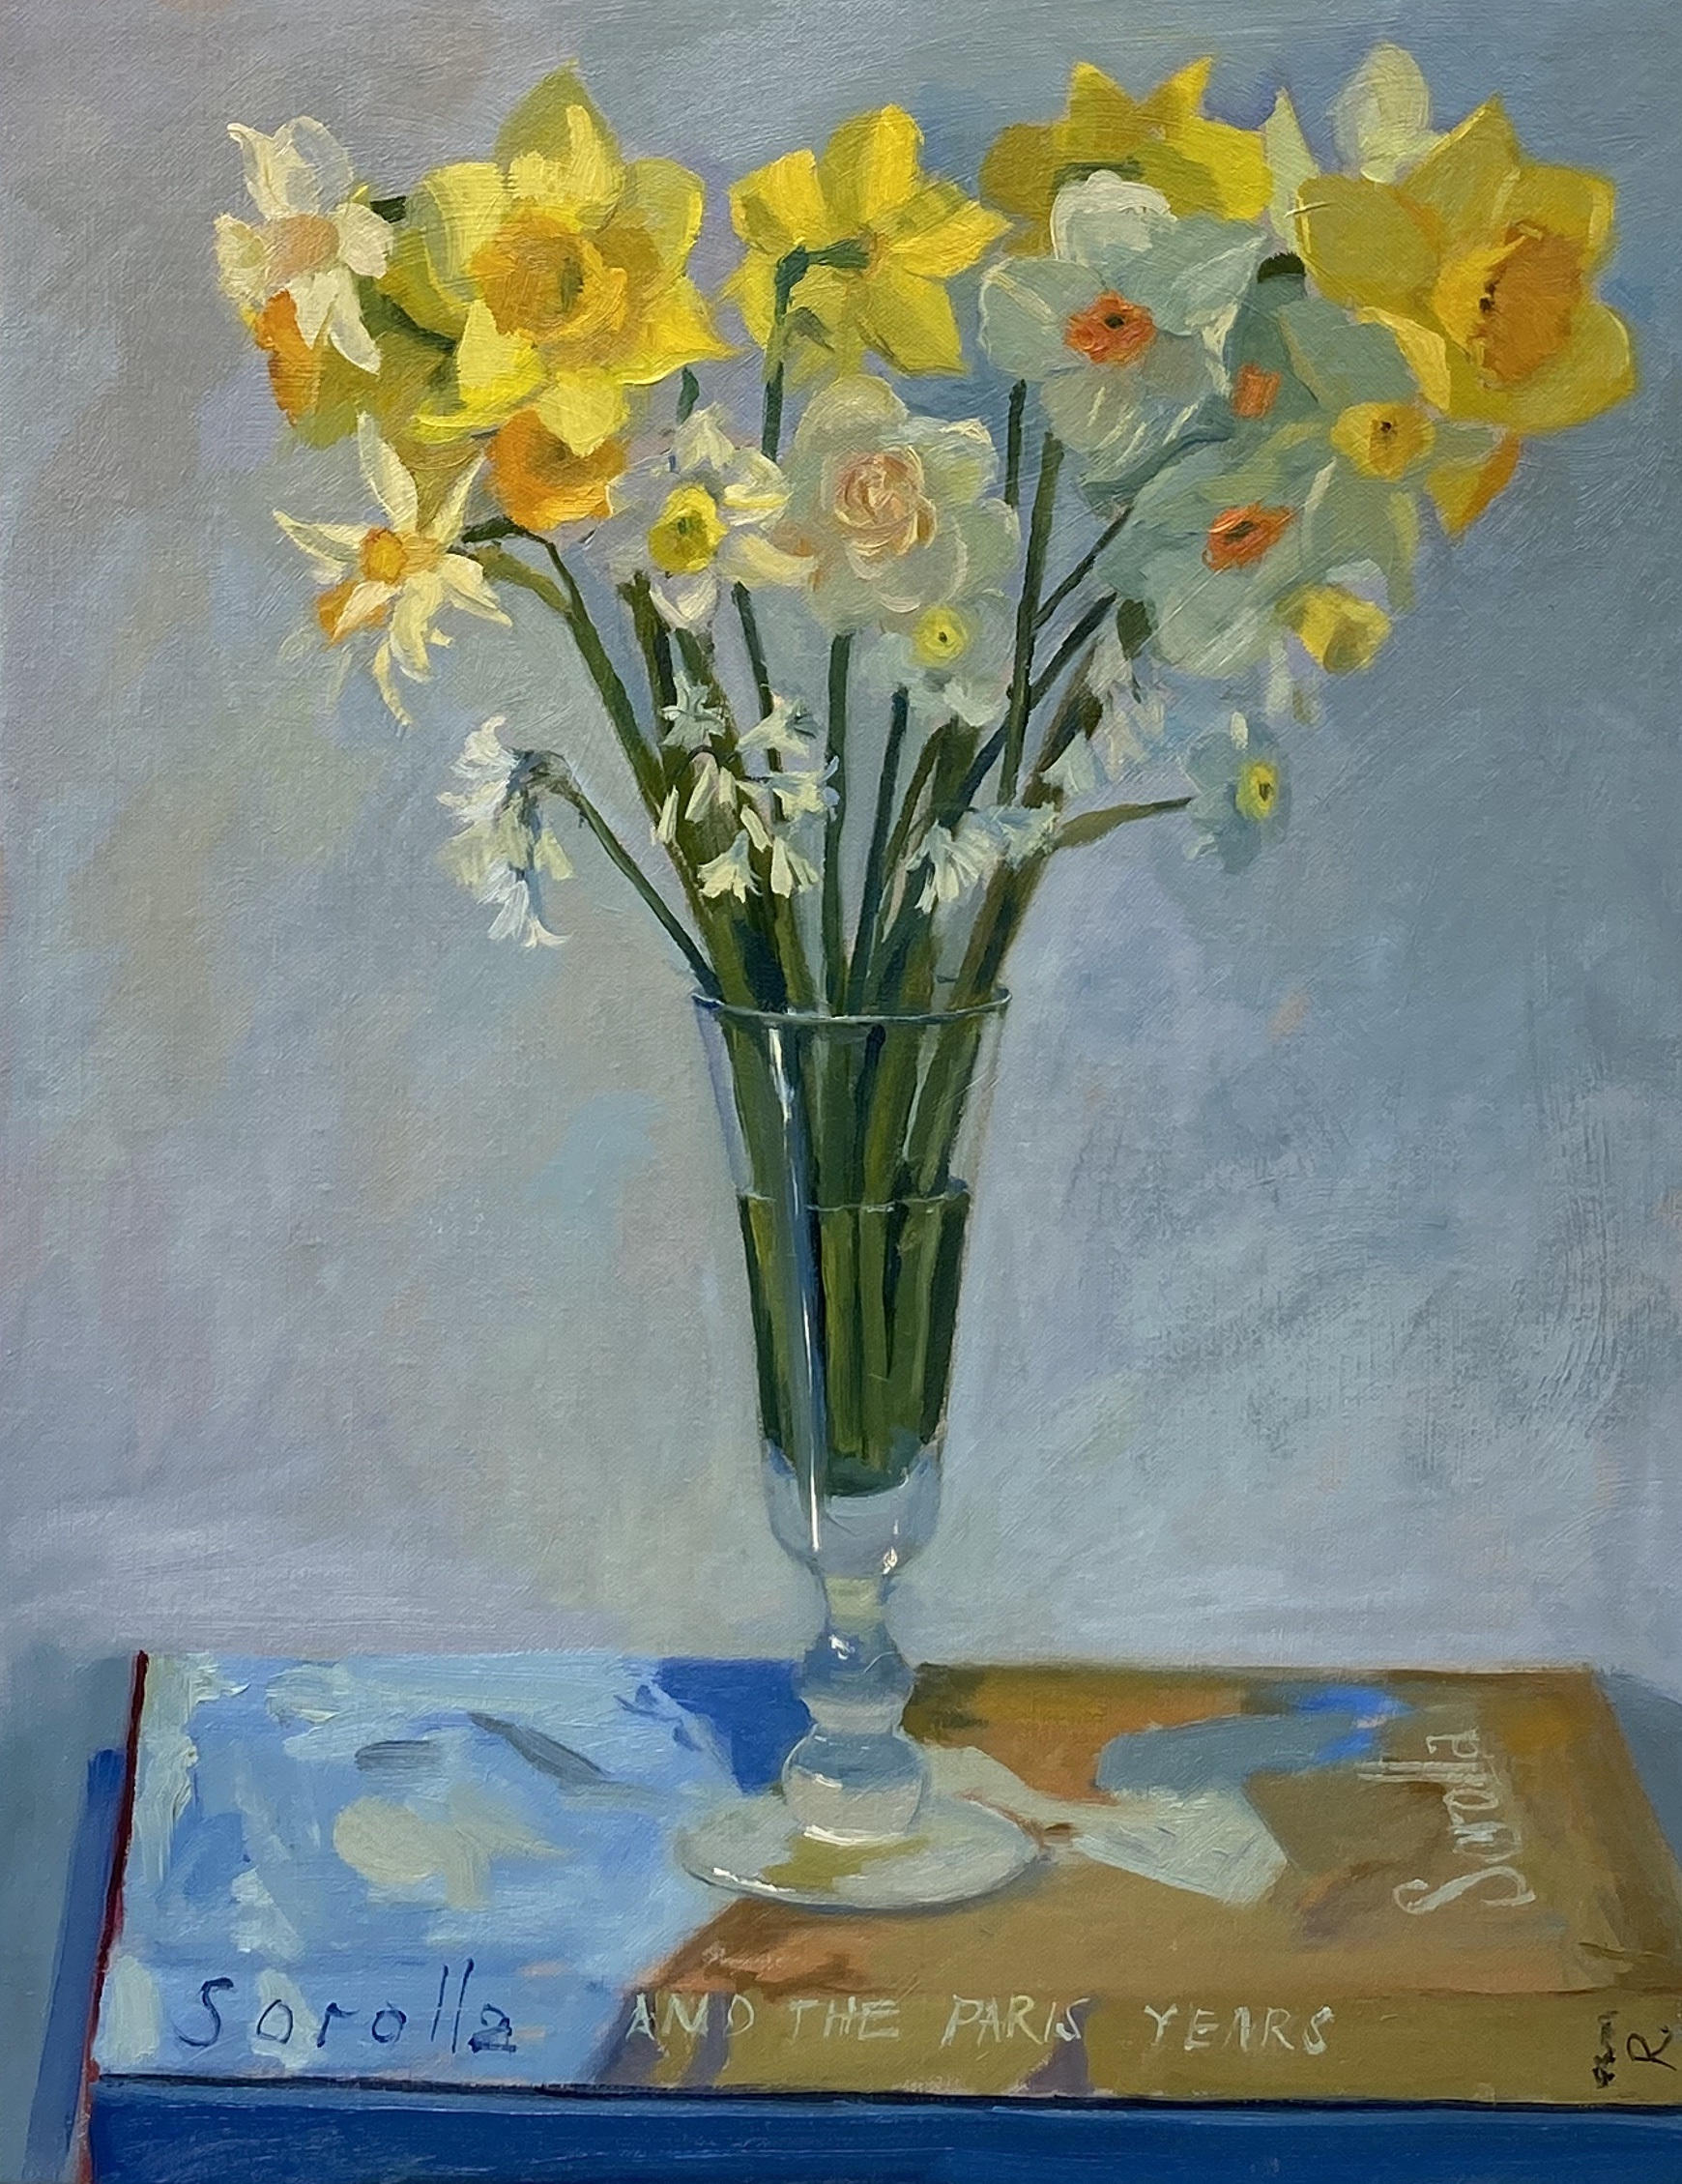 Daffodils and Snowdrops with Sorolla Book